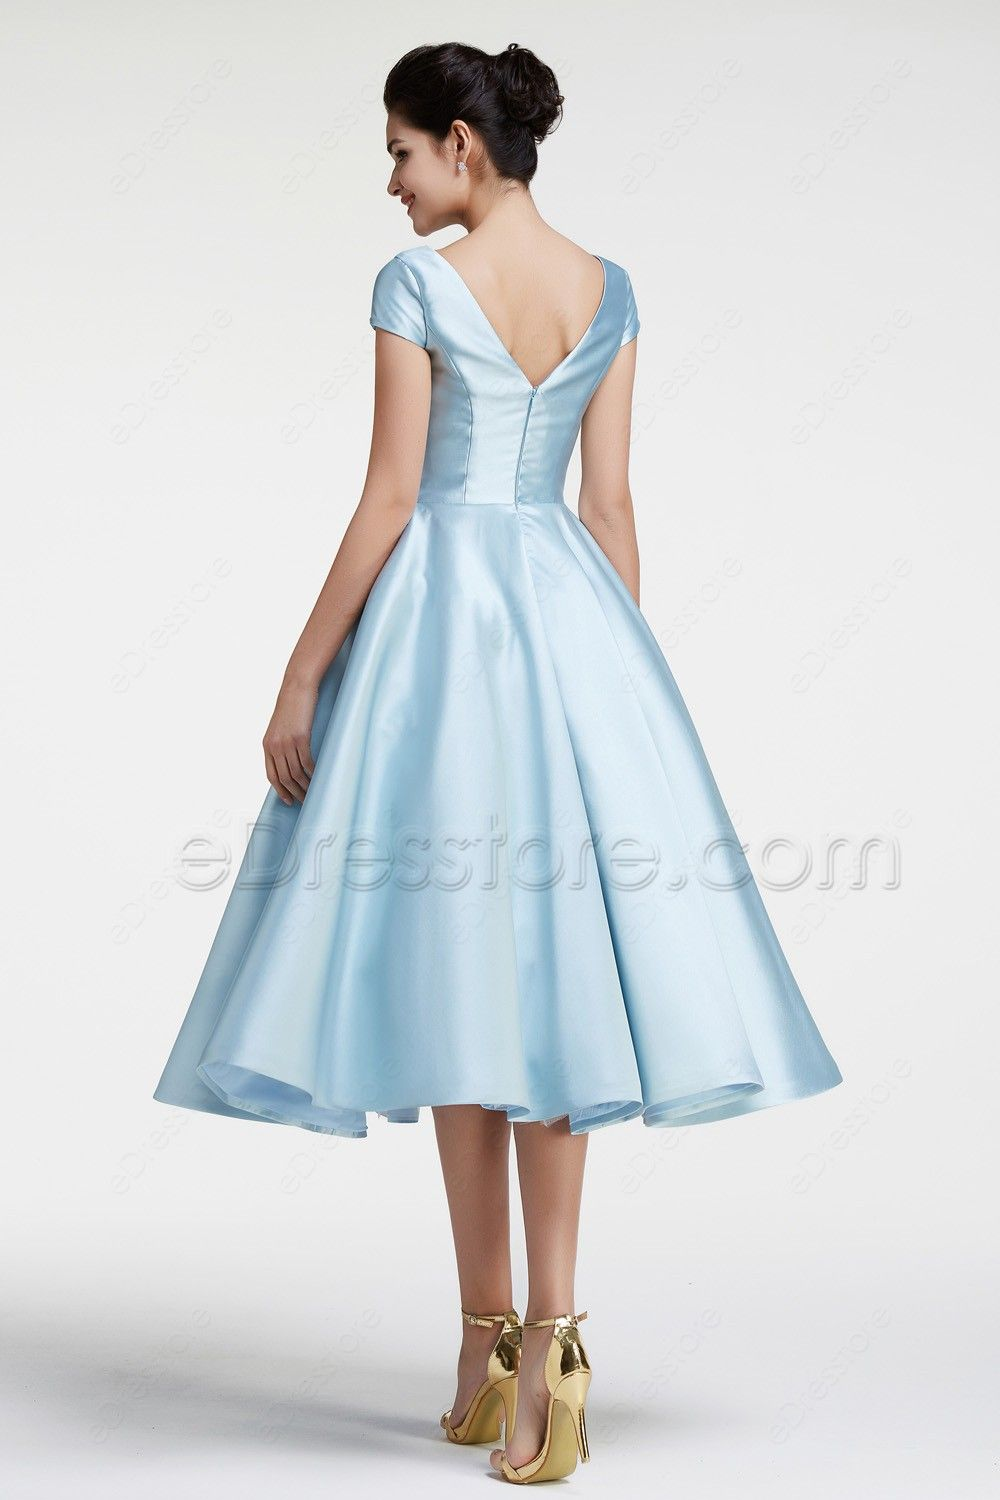 1c3459a77b58 The ice blue prom dress is made of twill satin fabric, ball gown skirt  looks vintage and elegant, modest top with sleeves, tea length skirt with  embroidery.